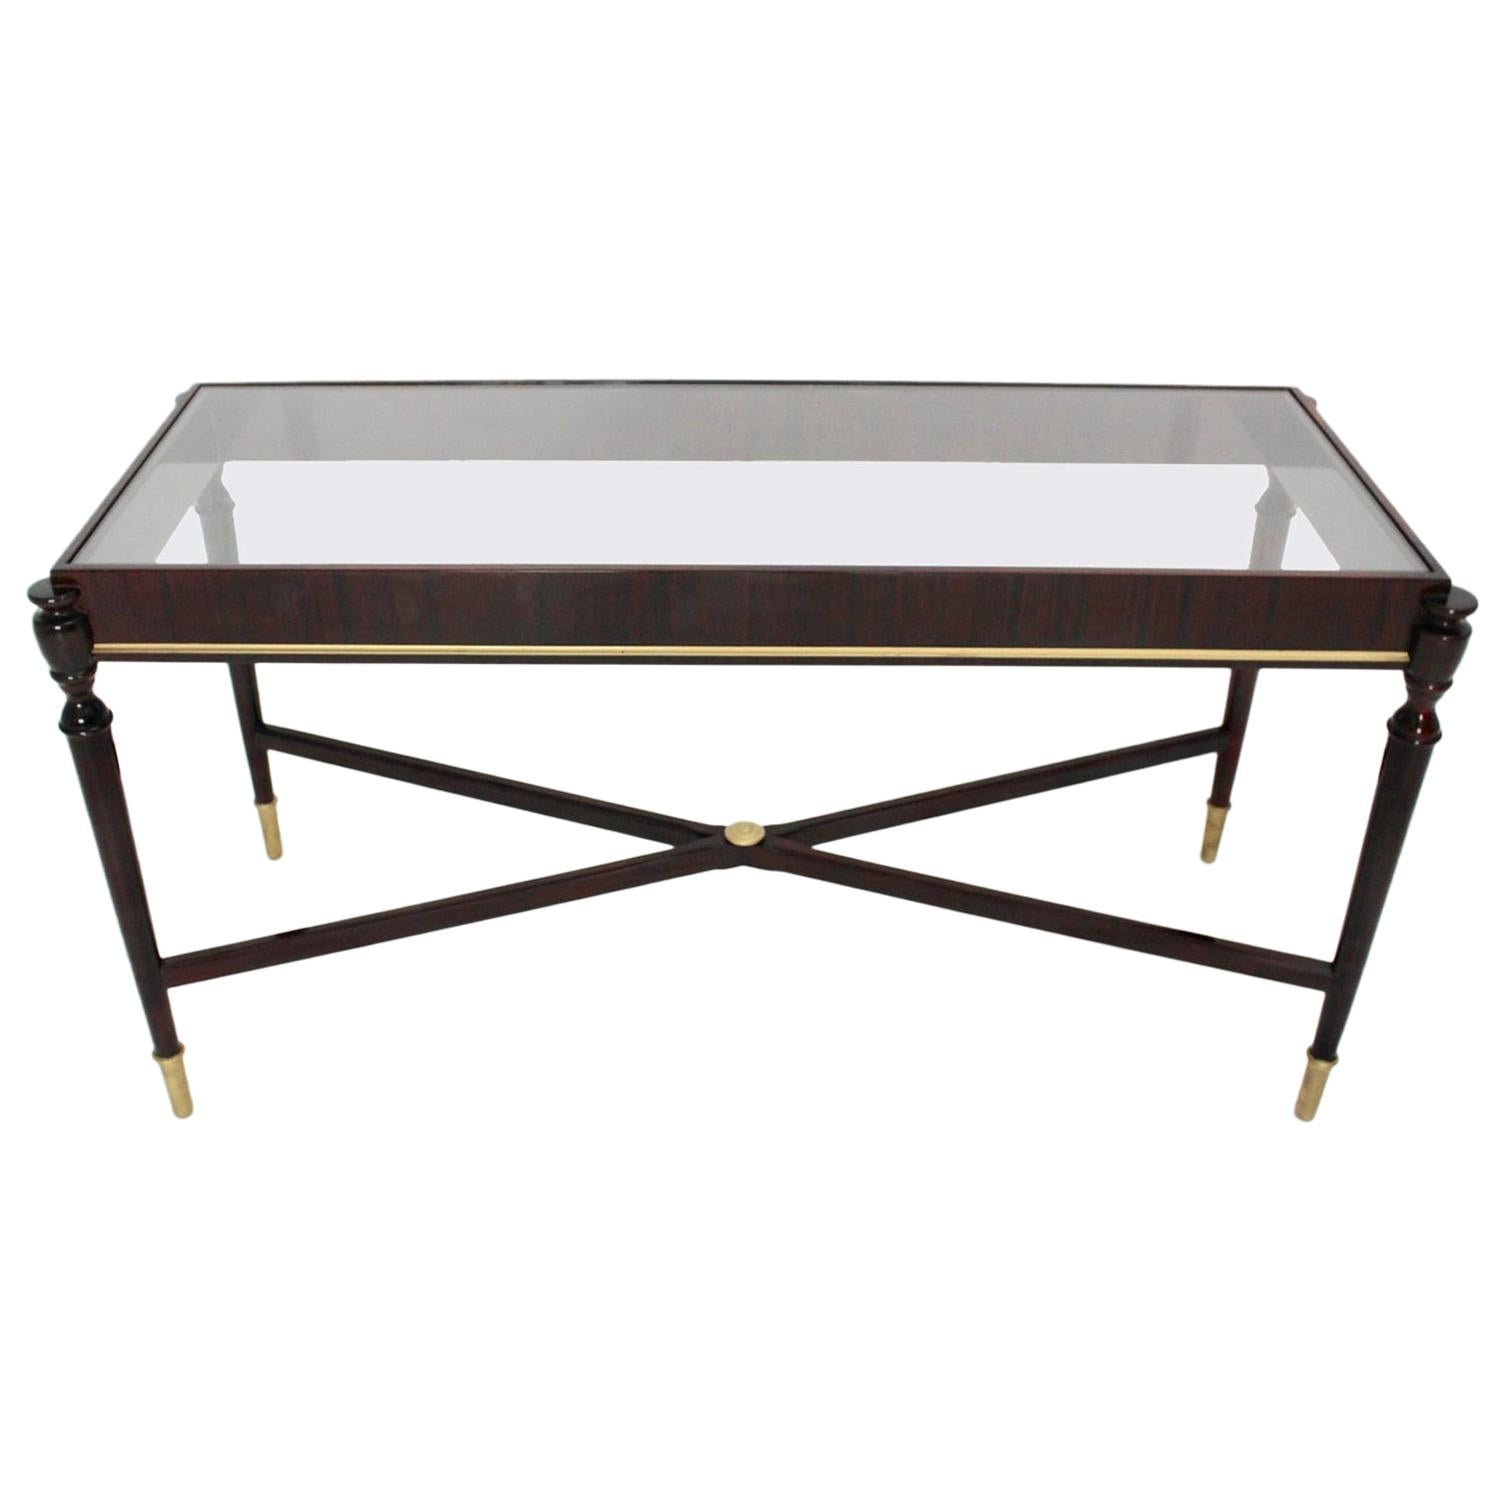 Mid-Century Modern Vintage Coffee Table Attributed to Paolo Buffa, Italy 1940s